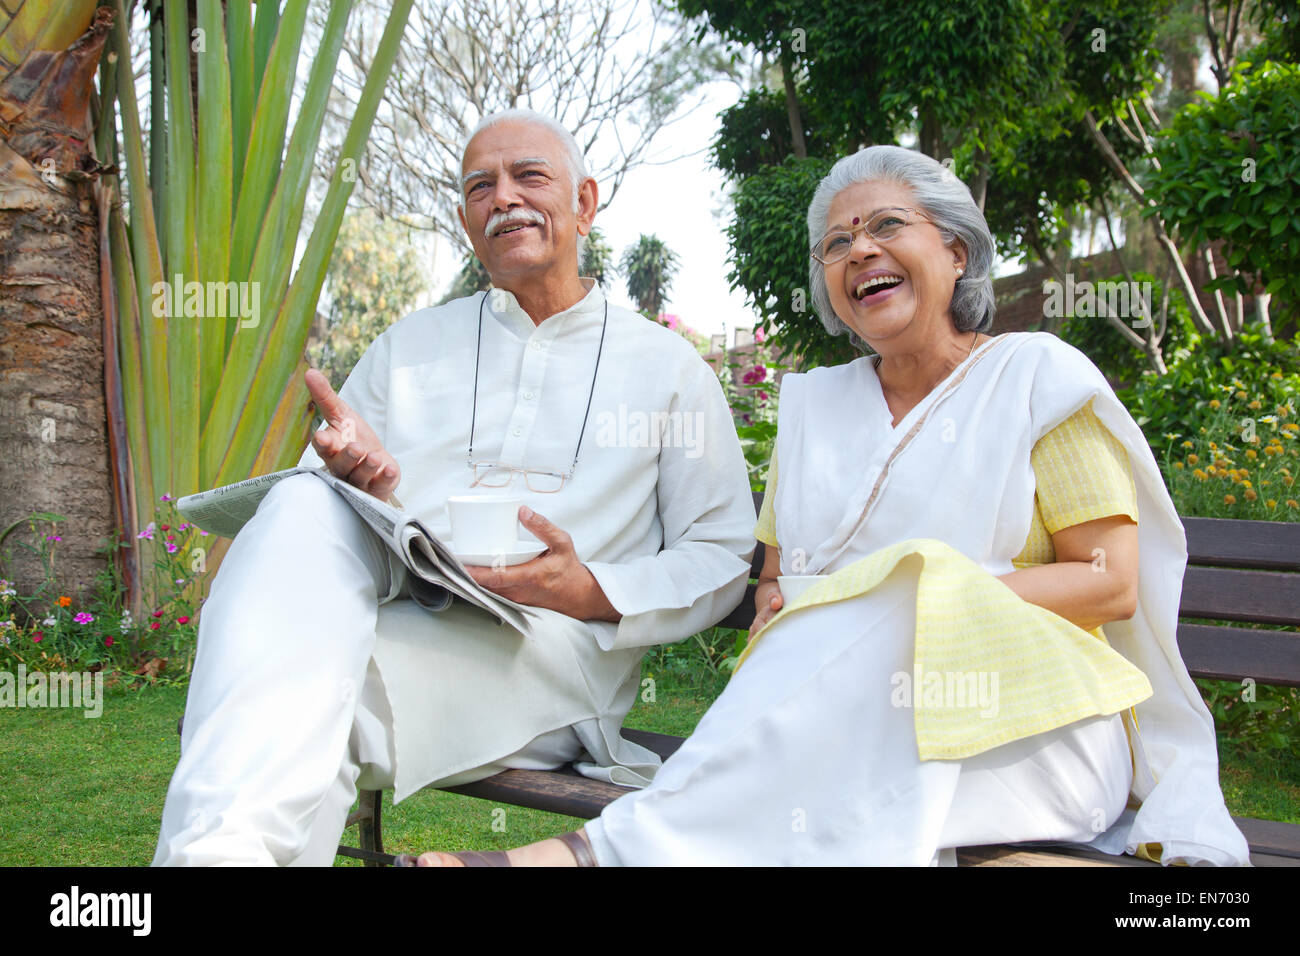 Old couple looking at something - Stock Image